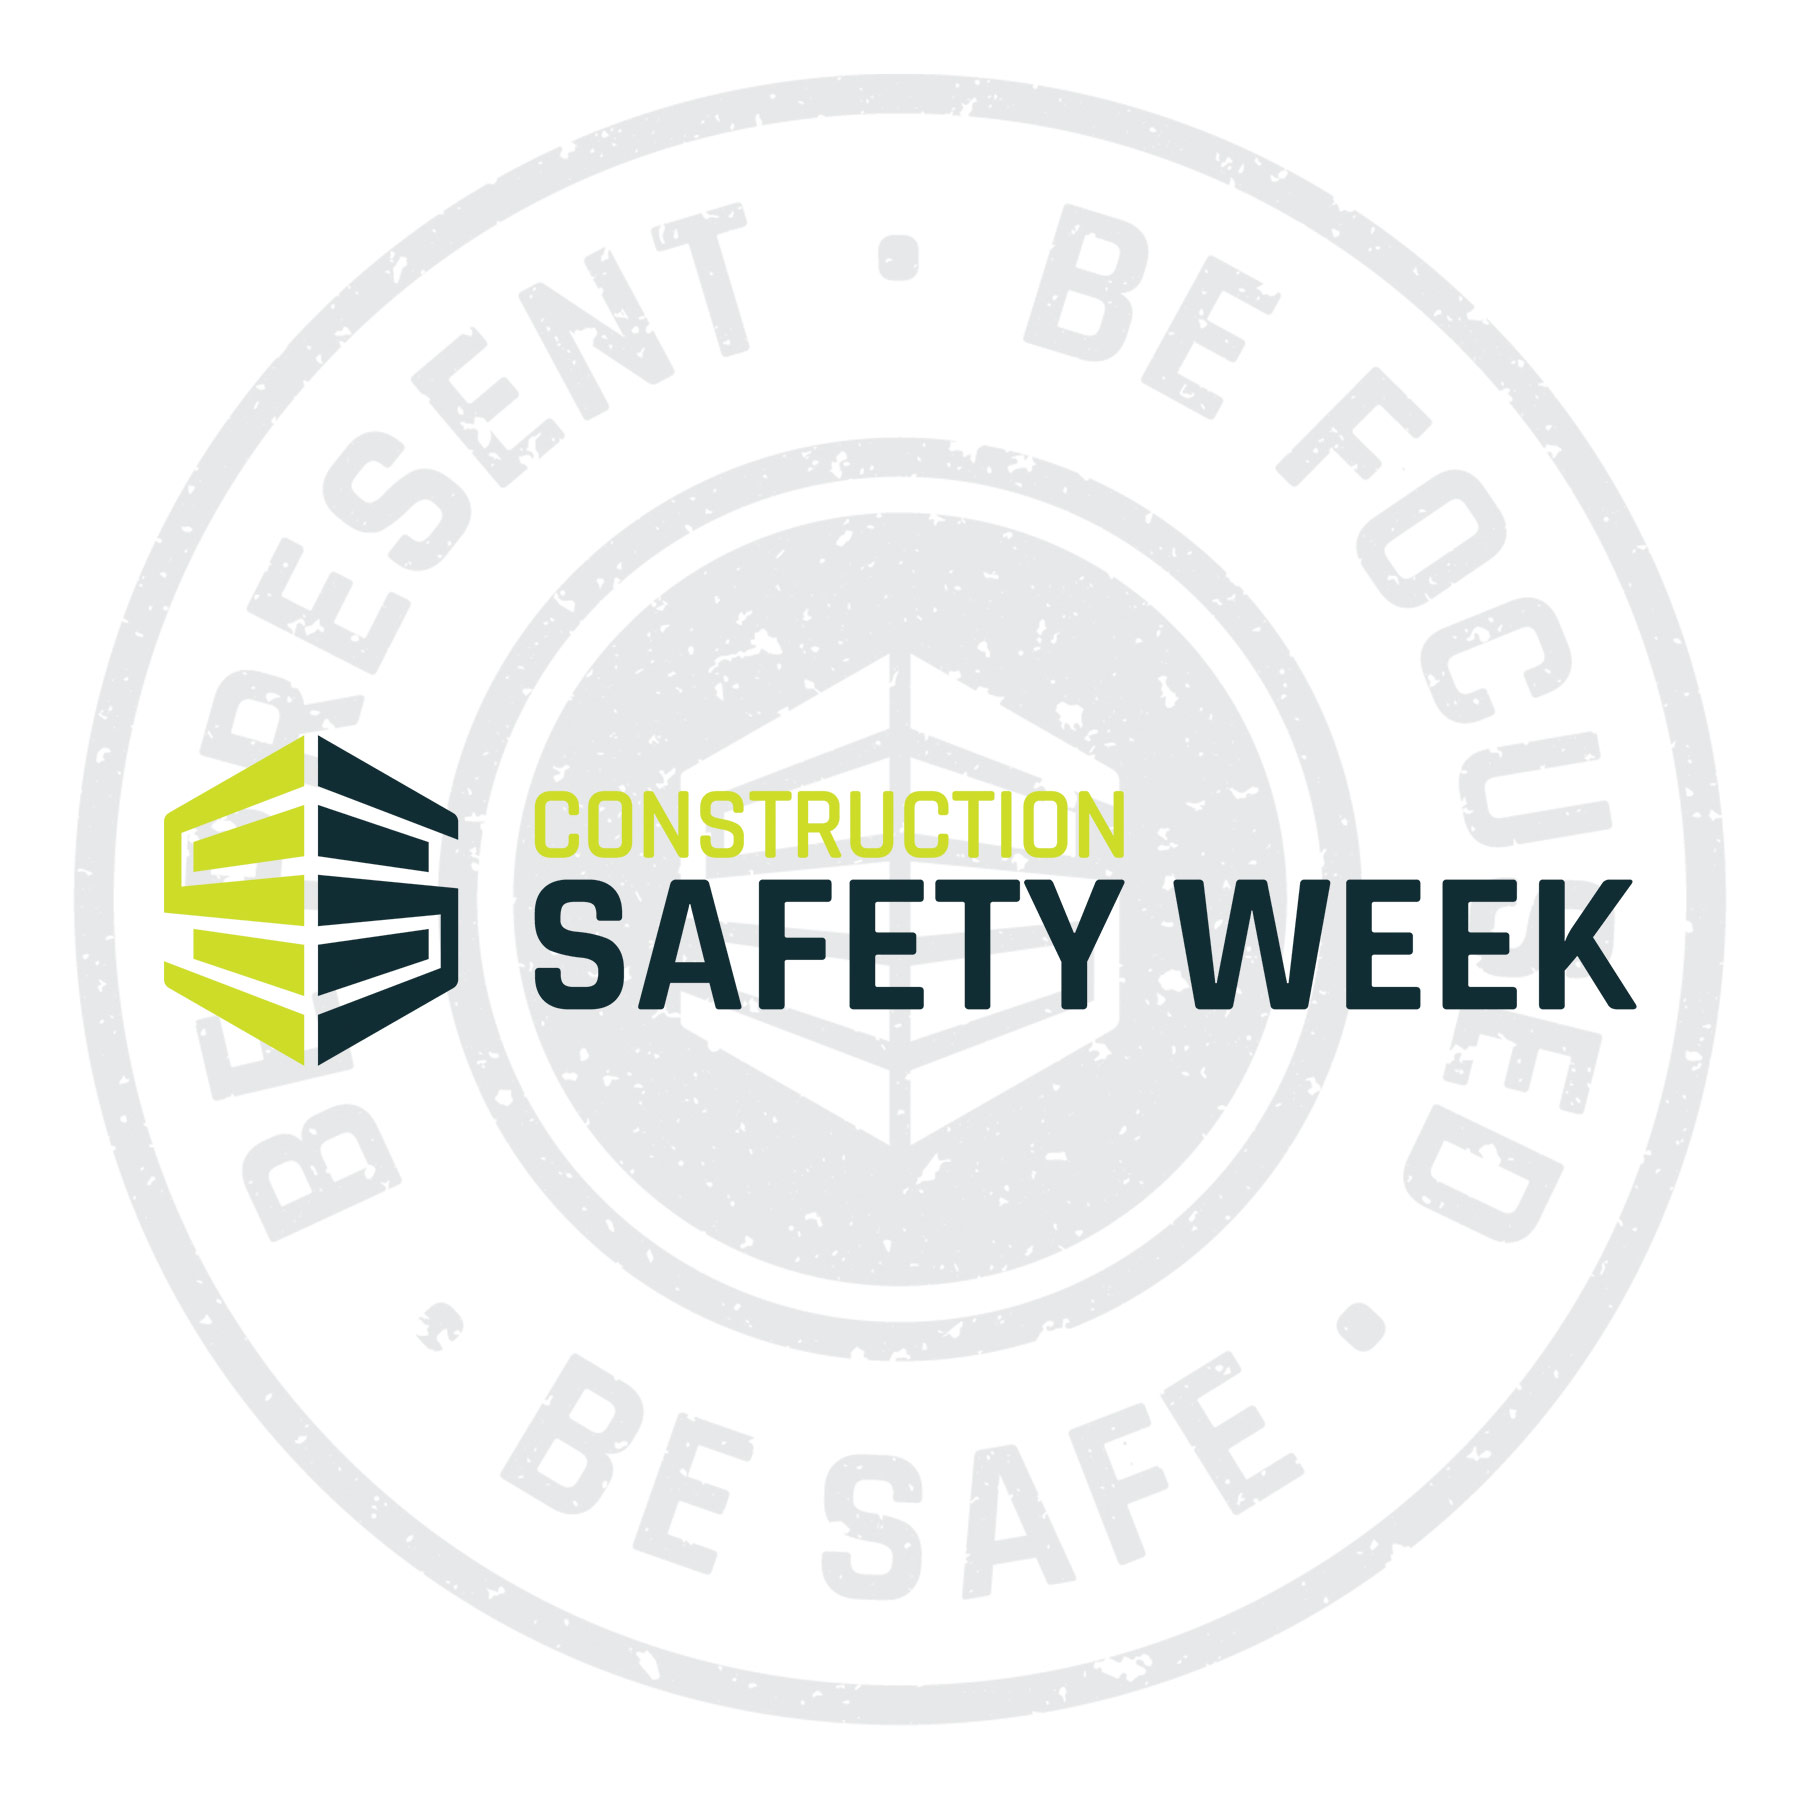 President's Message: Construction Safety Week 2021